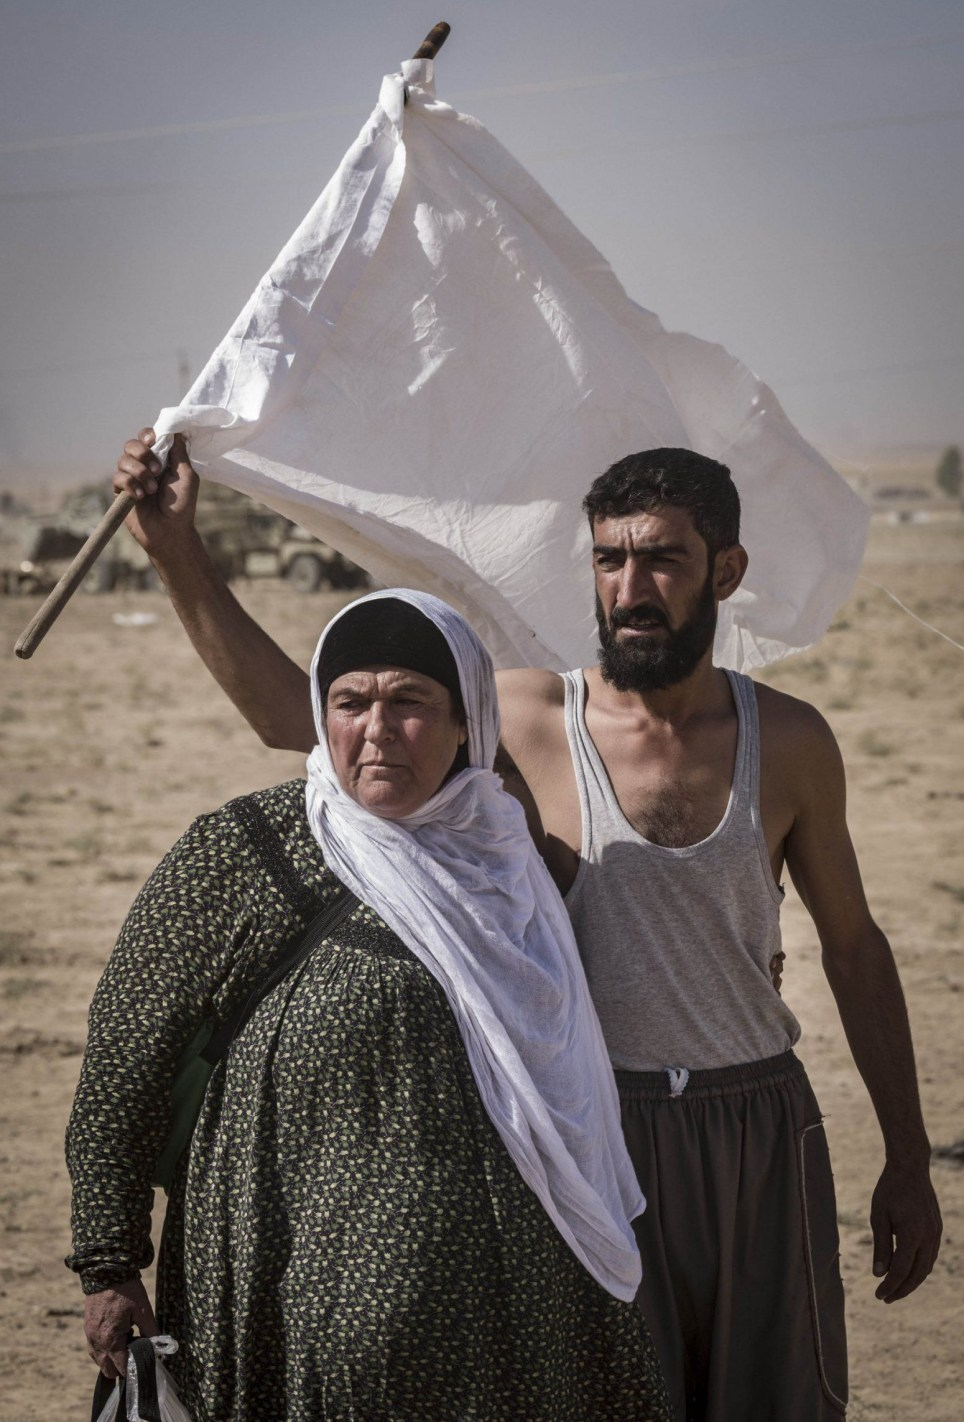 Mandatory Credit: Photo by Berci Feher/ZUMA Wire/REX/Shutterstock (6610914a) Nineveh Governorate, Iraq - Civilians are escaping from Khorsabad which is controlled by the isis and under Peshmerga fire. Battle for Mosul, Iraq - 21 Oct 2016